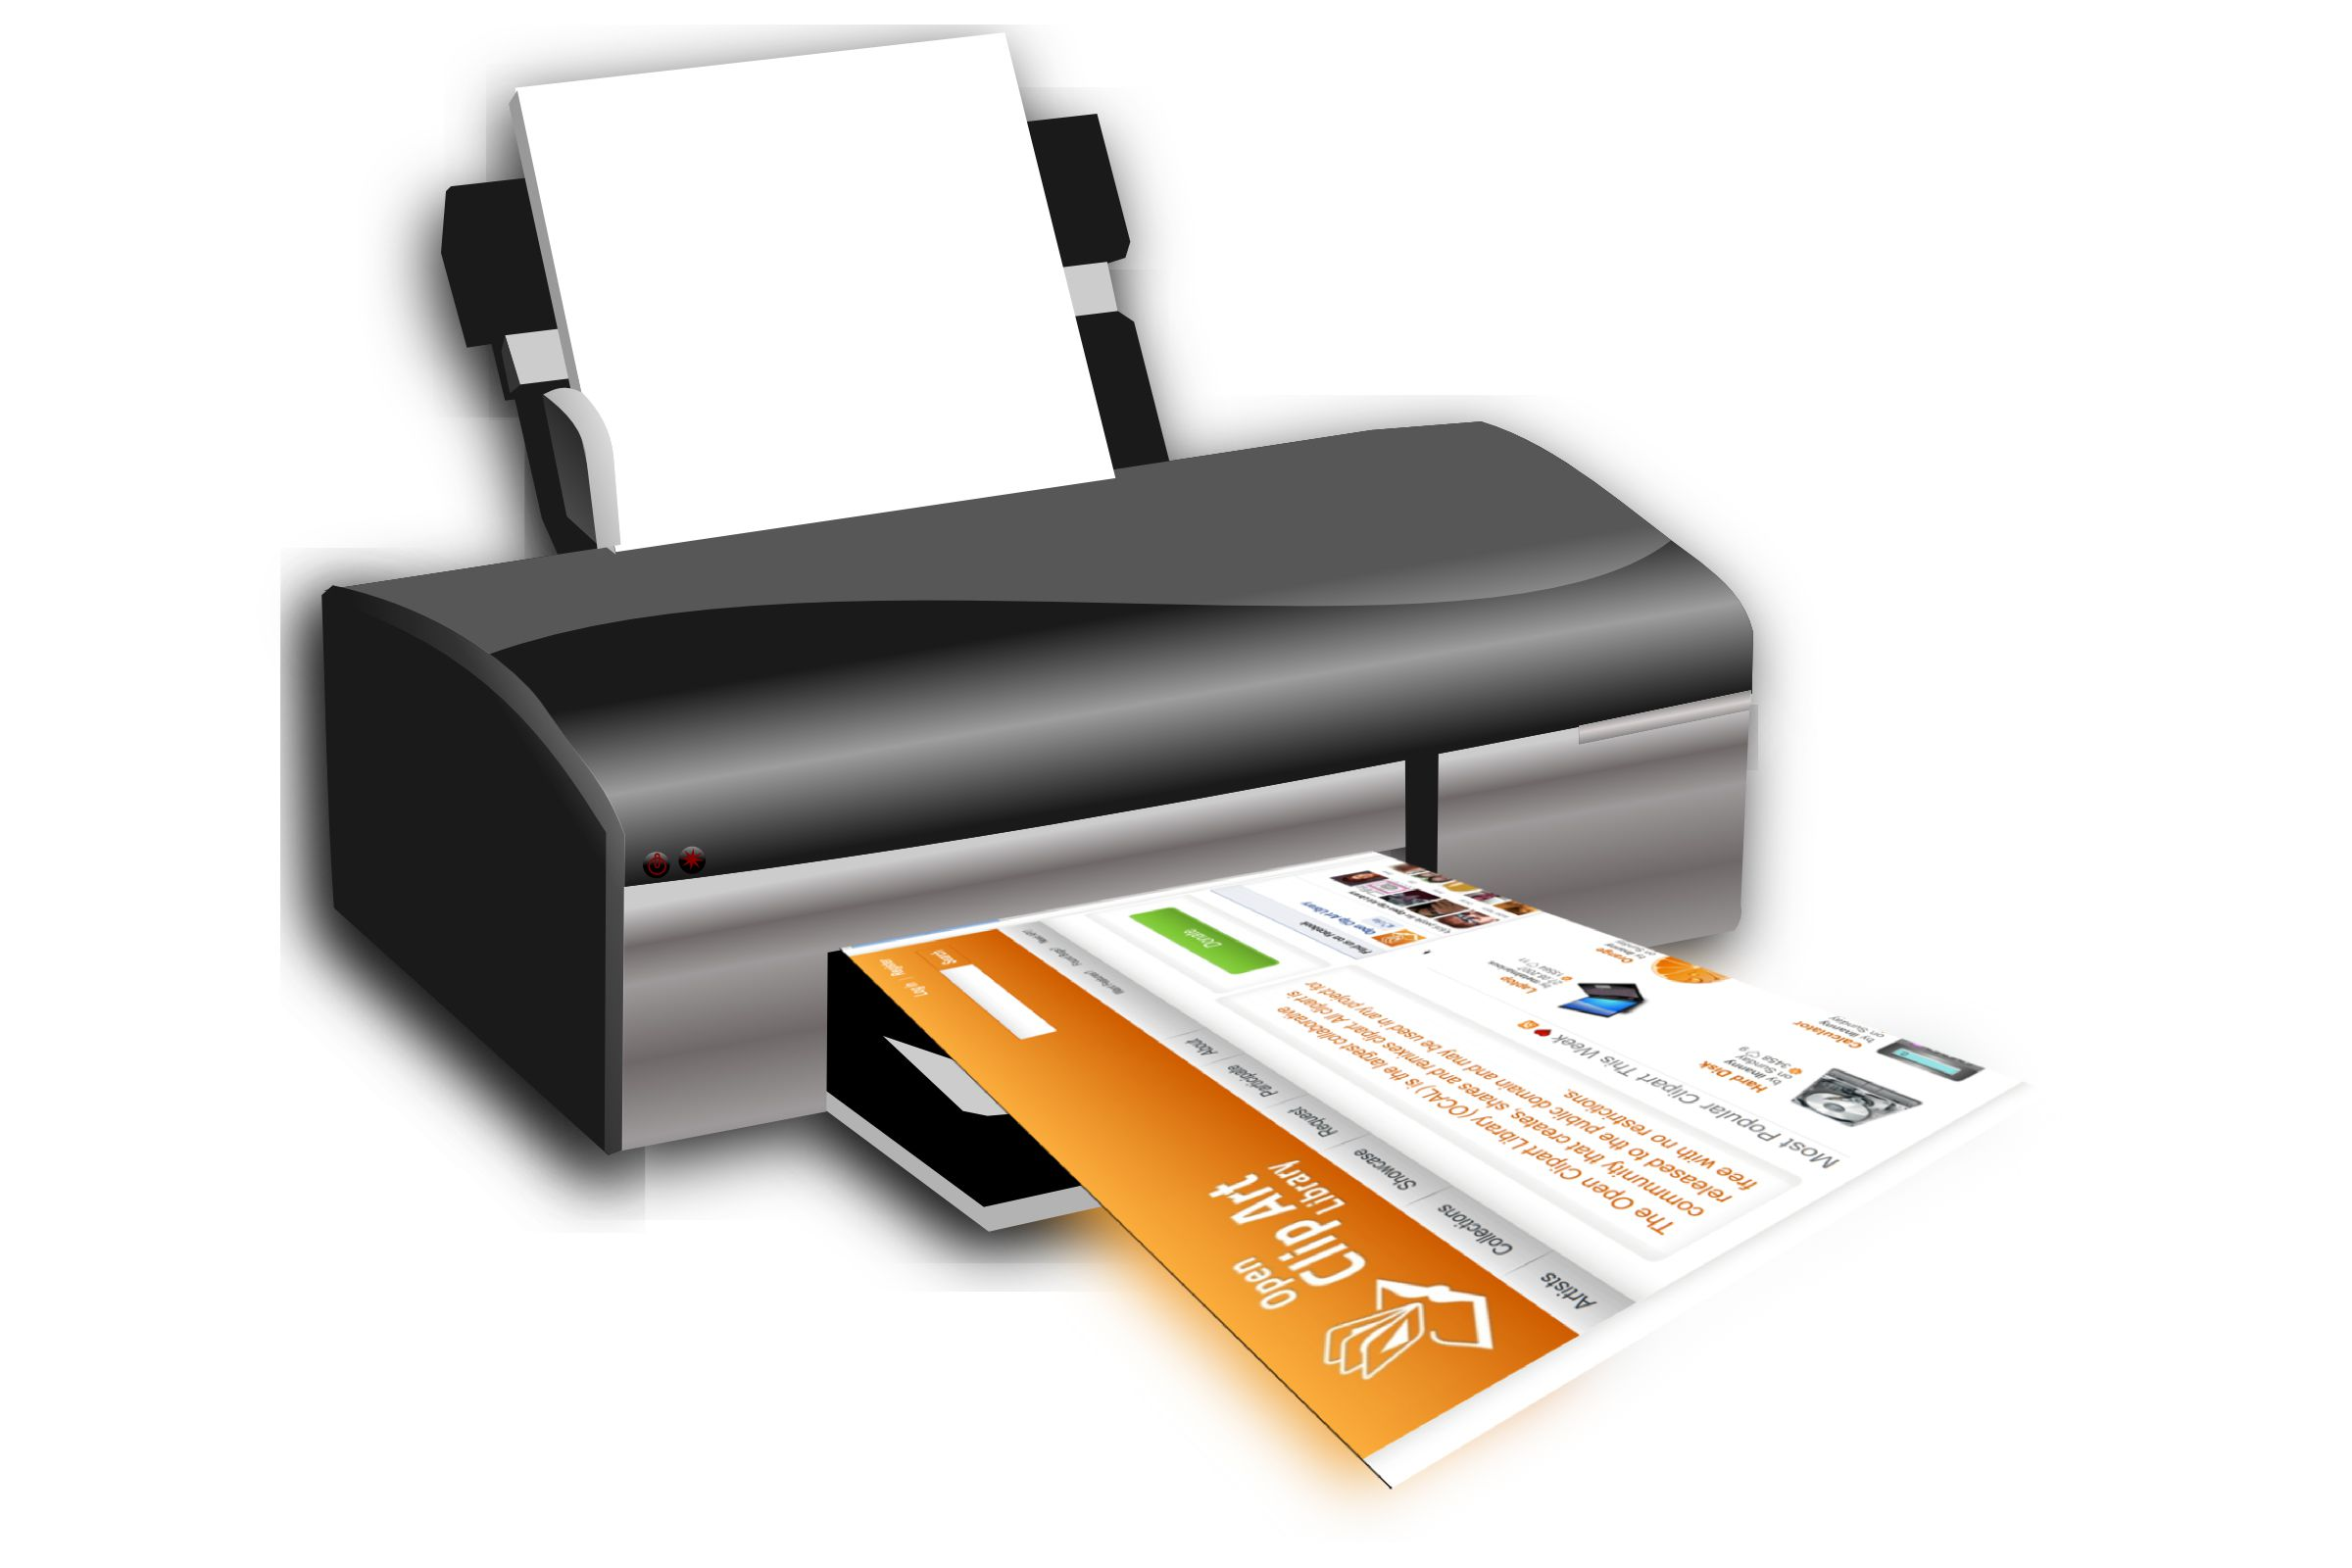 How To Print A Web Page